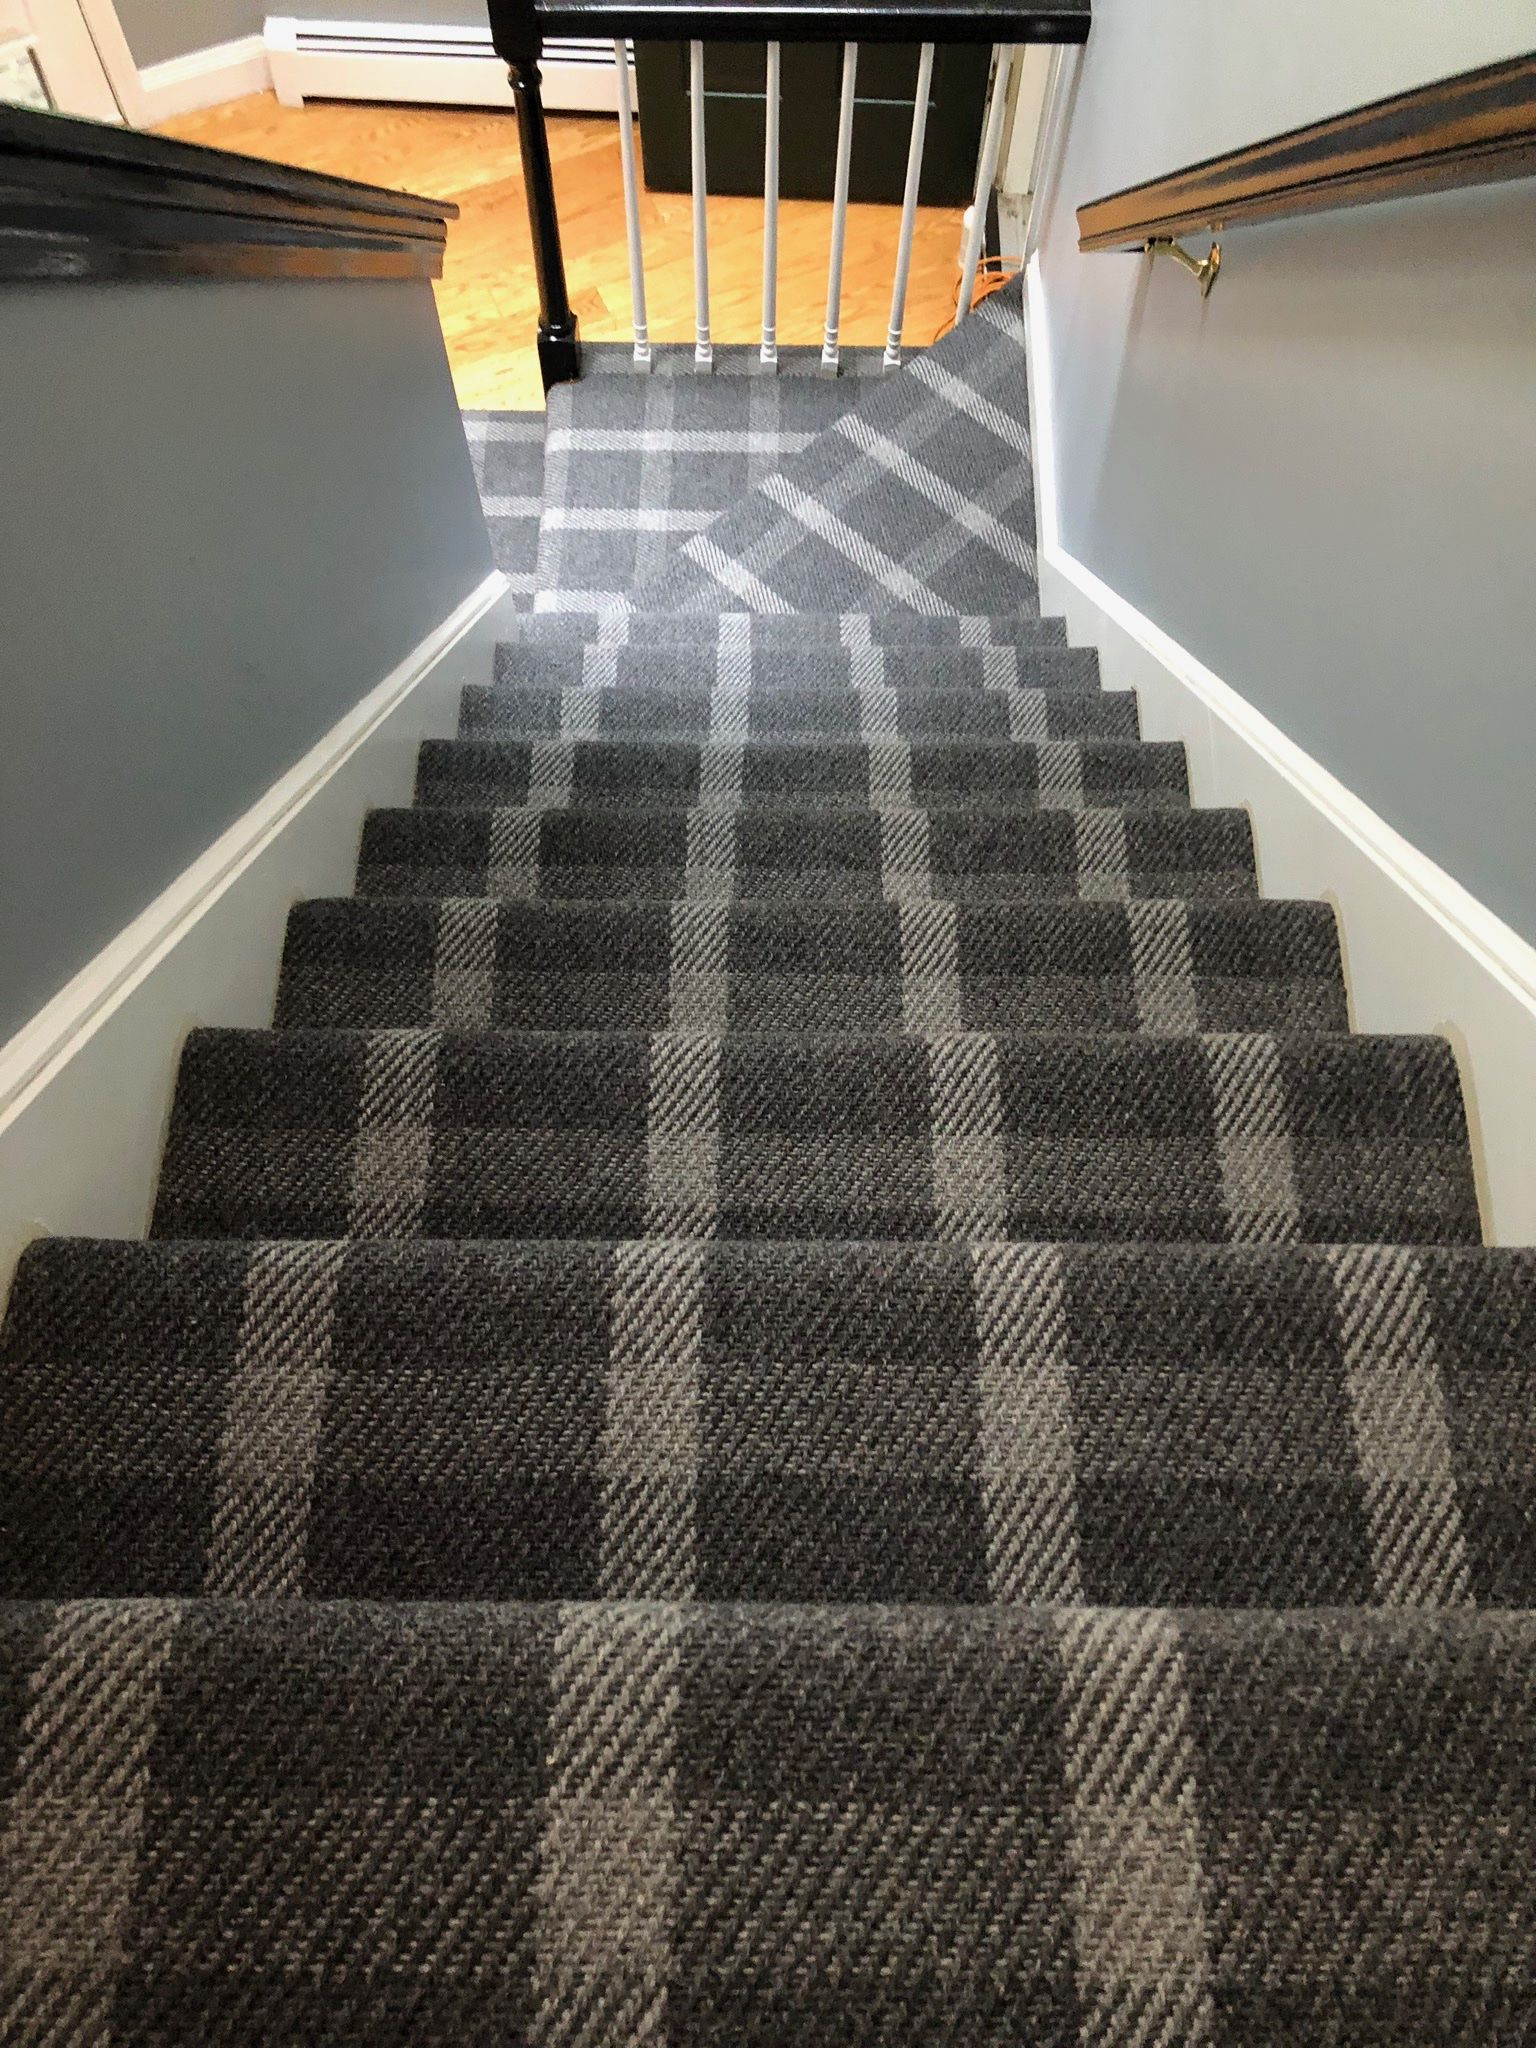 New Kaleen Product Called Road Town Is Super Easy Looking On Stairs And Runners It S A Cant Miss Oppor Patterned Stair Carpet Stair Decor Stair Runner Carpet